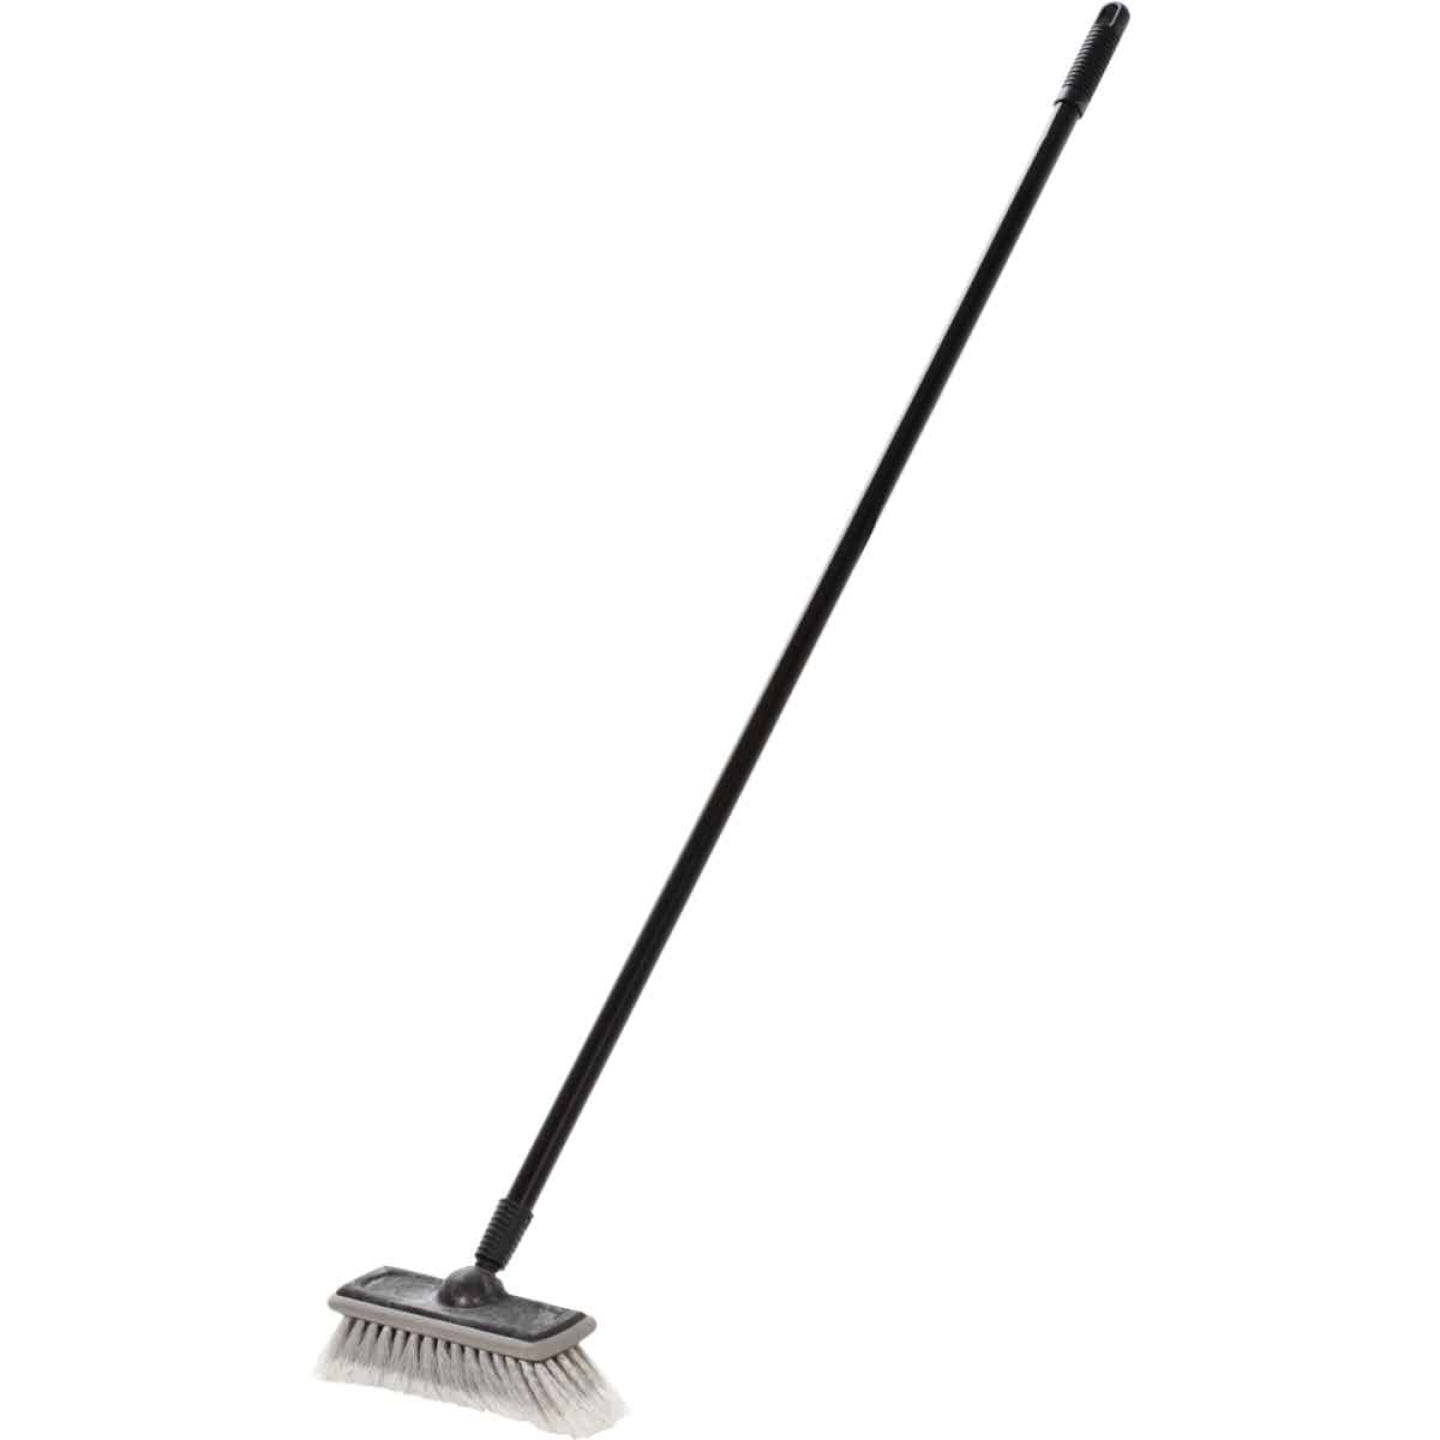 Carrand Dip-N Brush 48 In. Wash Brush Image 1